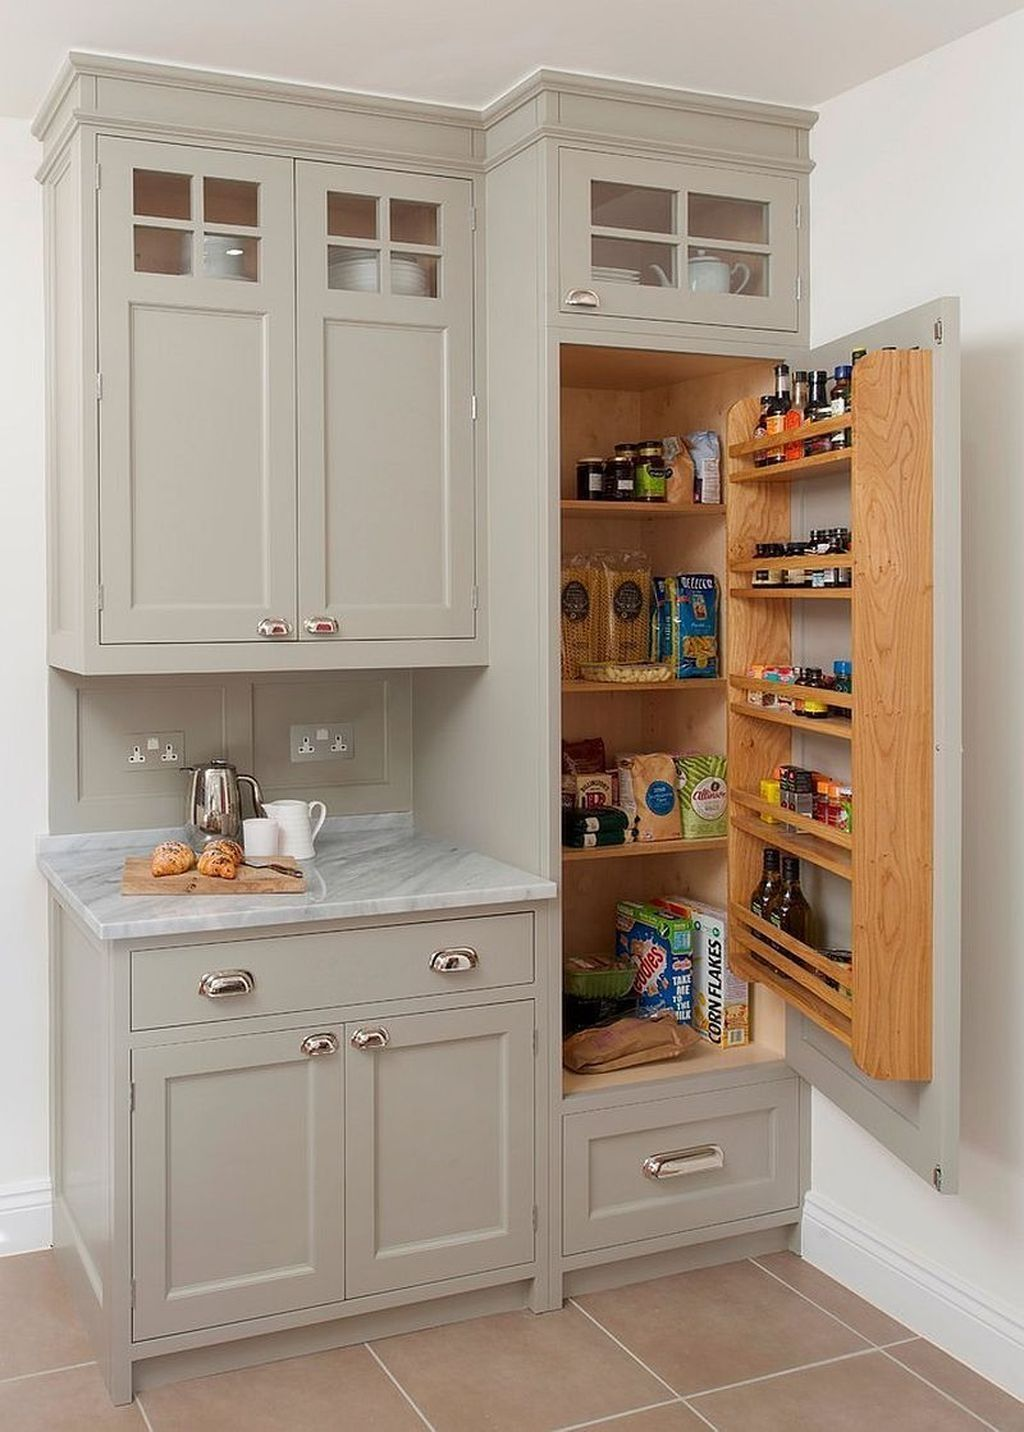 20+ Comfy Kitchen Remodel Ideas With Some Storage #kitchenremodelideas